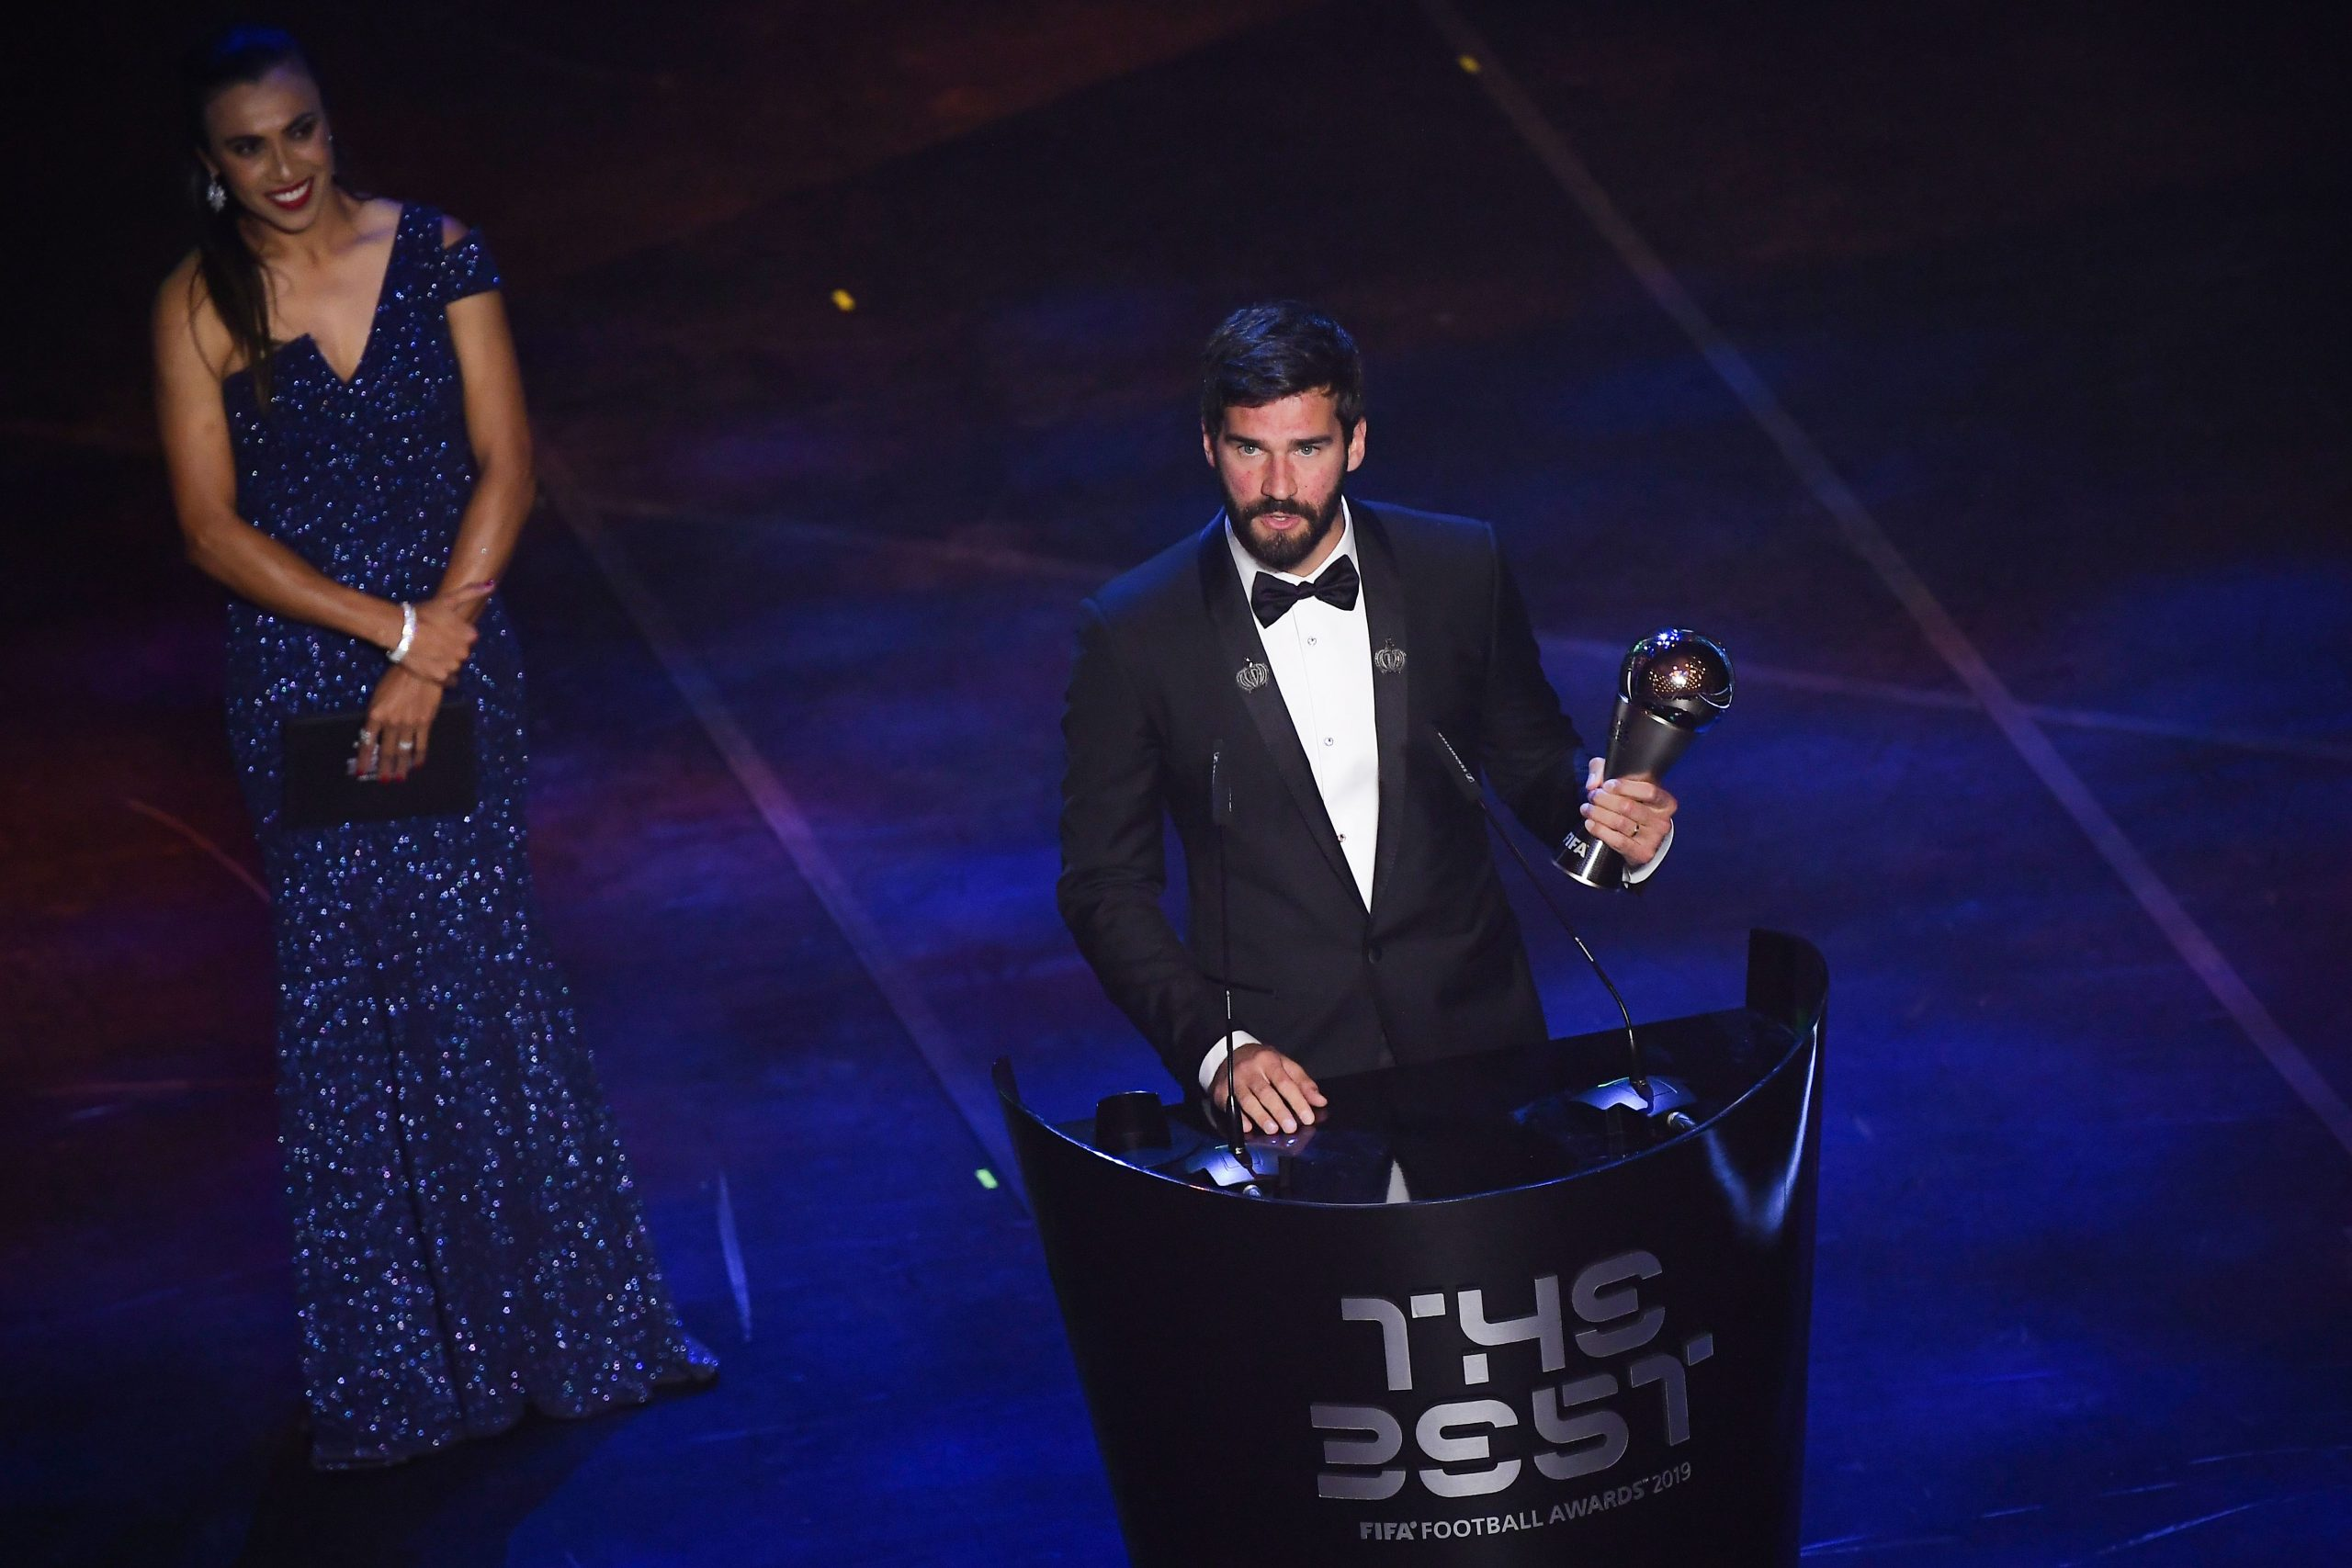 Brazil and Liverpool goalkeeper Alisson Becker speaks after winning the trophy for the Best FIFA Men's Goalkeeper of 2019 Award. (GETTY Images)